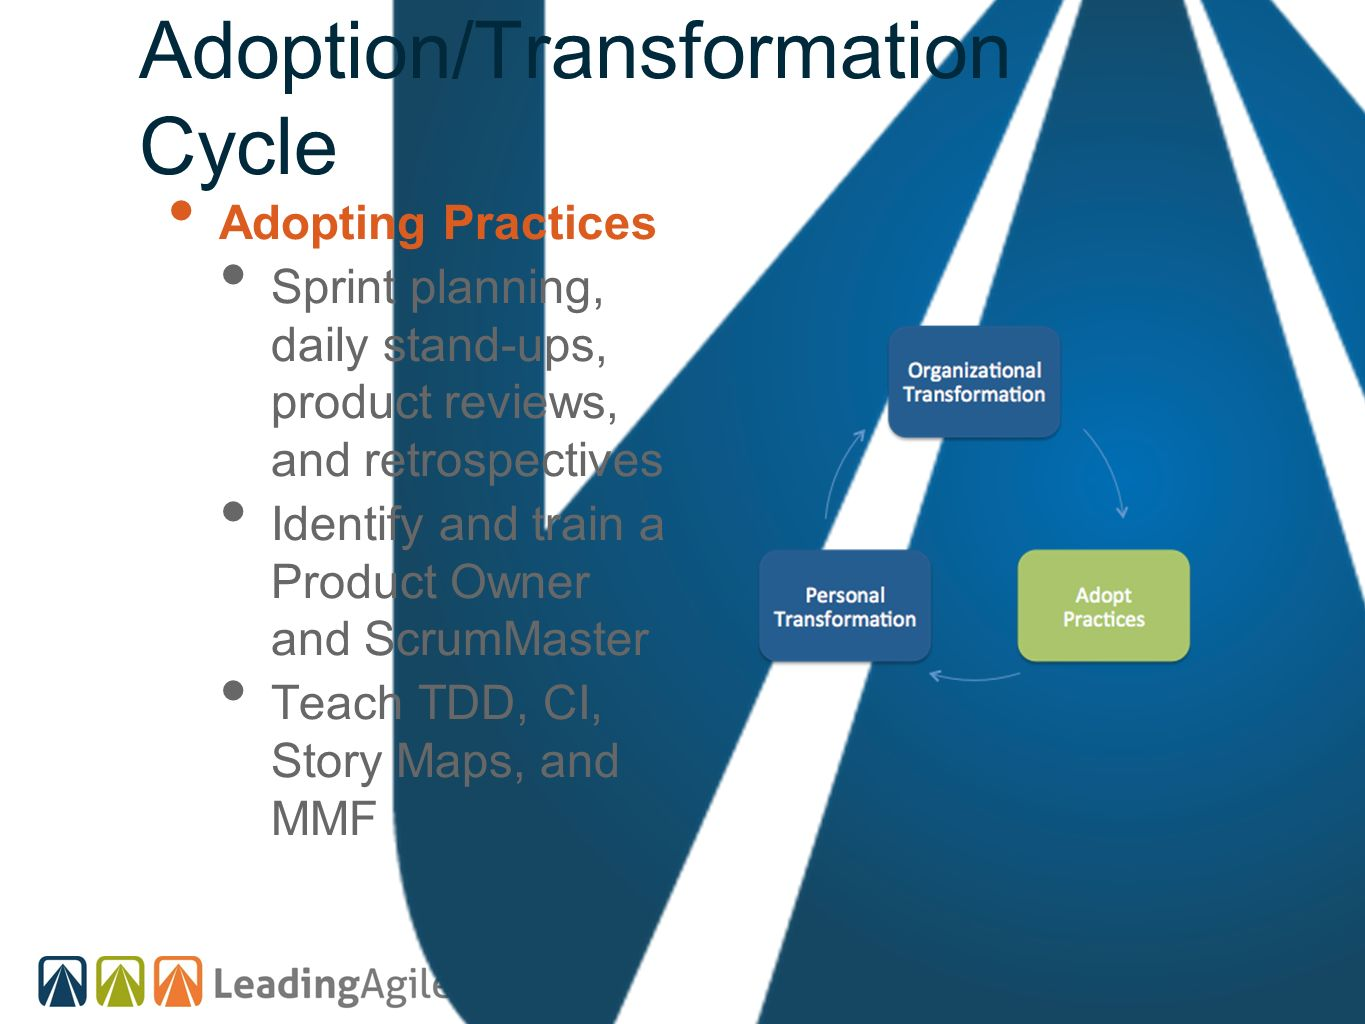 Adoption/Transformation Cycle